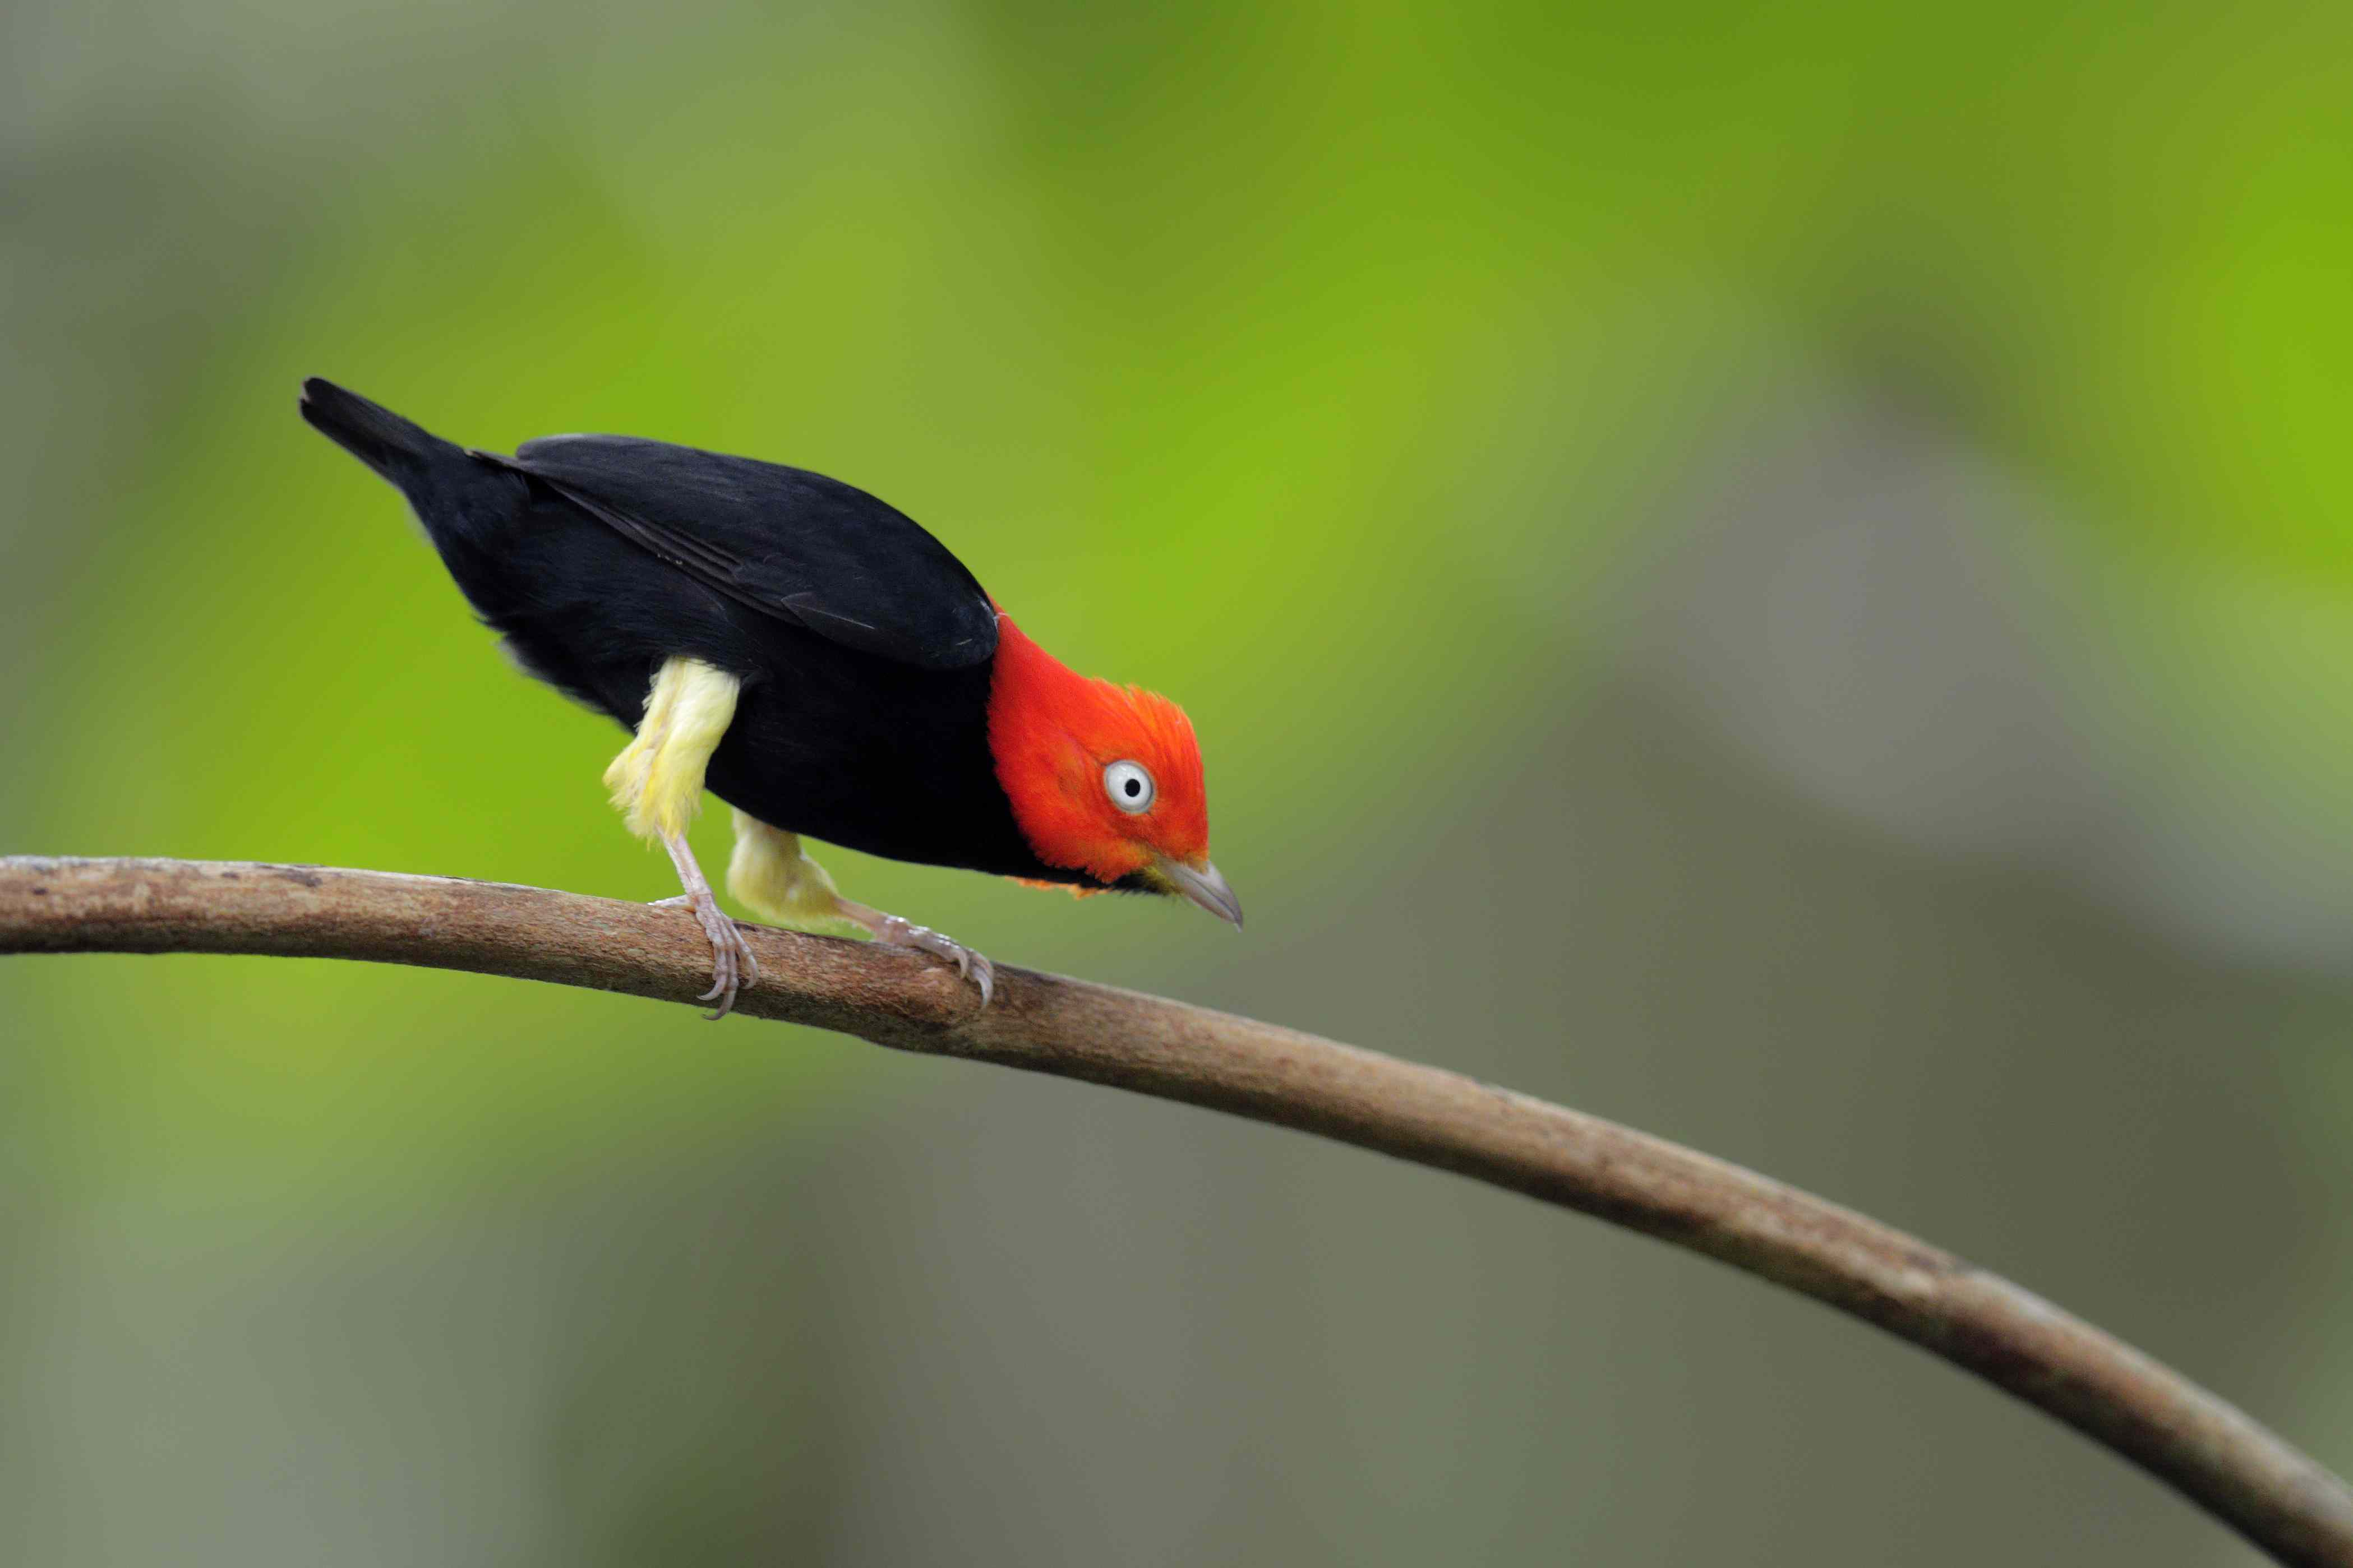 Red-capped Manakin (Ceratopipra mentalis) a black bird with red head and yellow legs